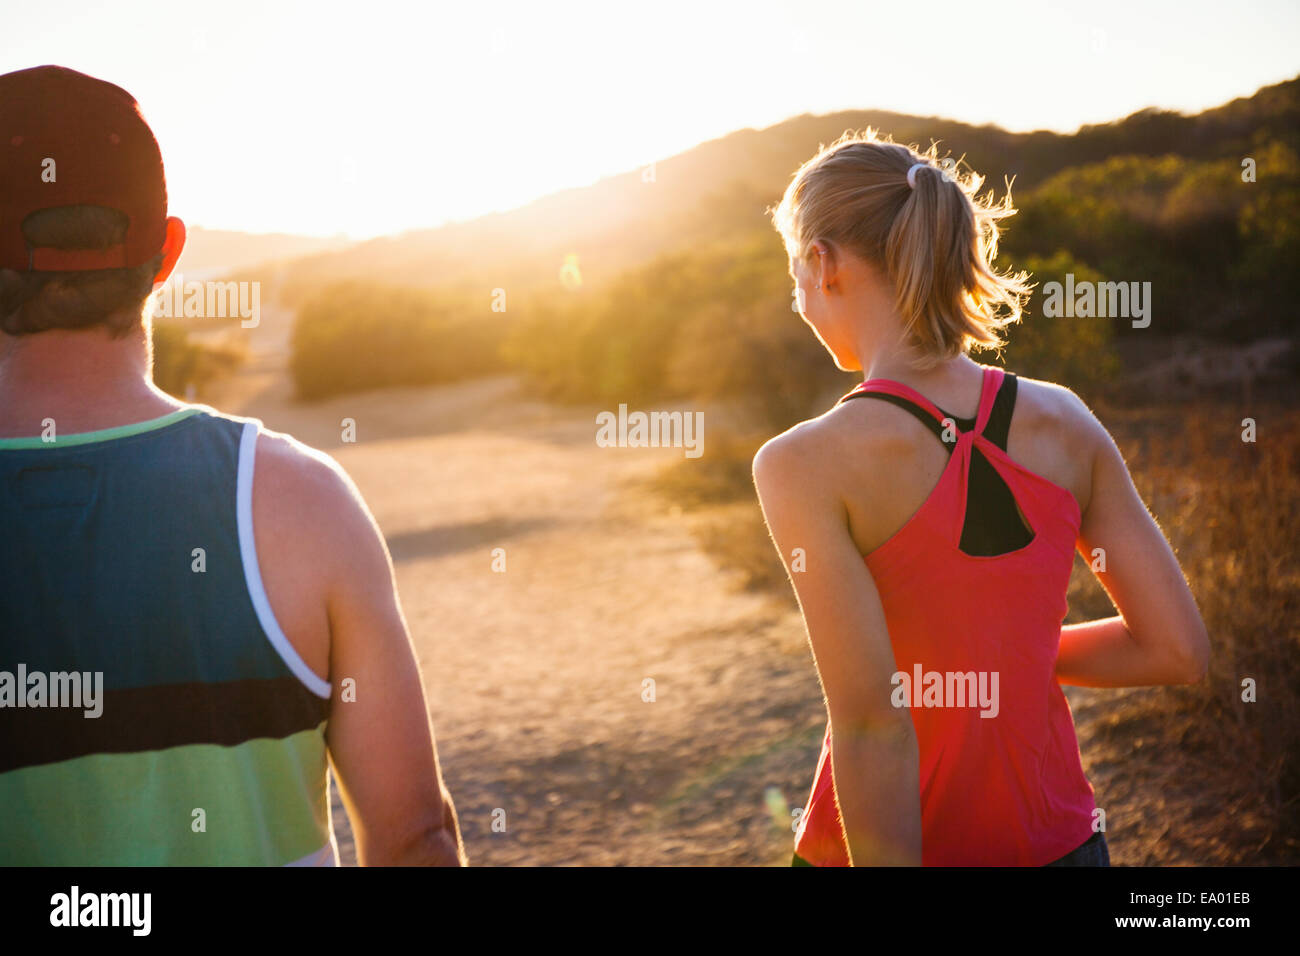 Joggers walking on sunlit path, Poway, CA, USA - Stock Image